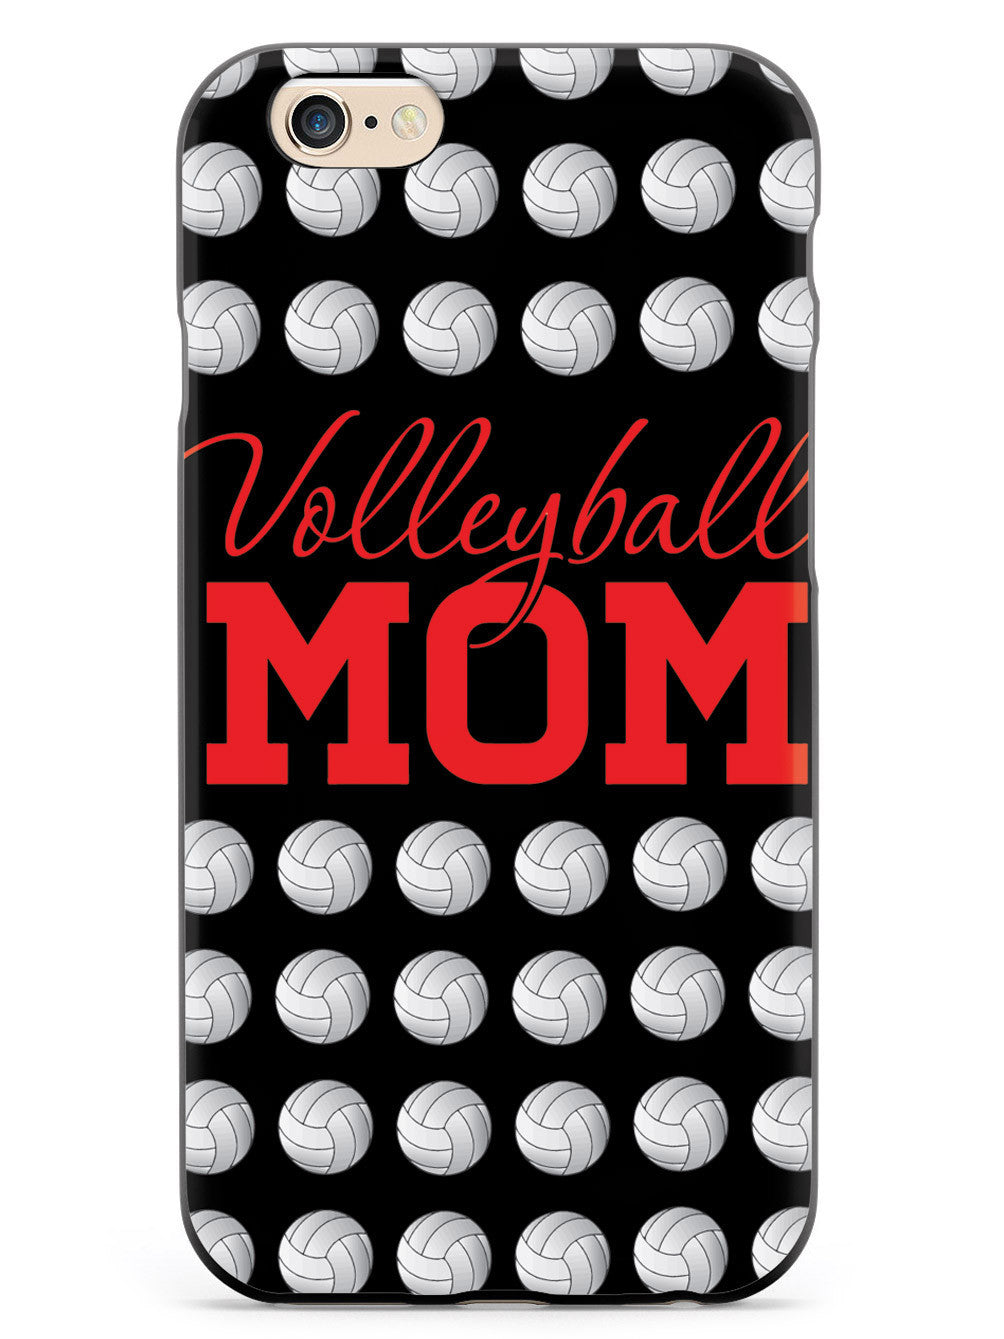 Volleyball Mom Case